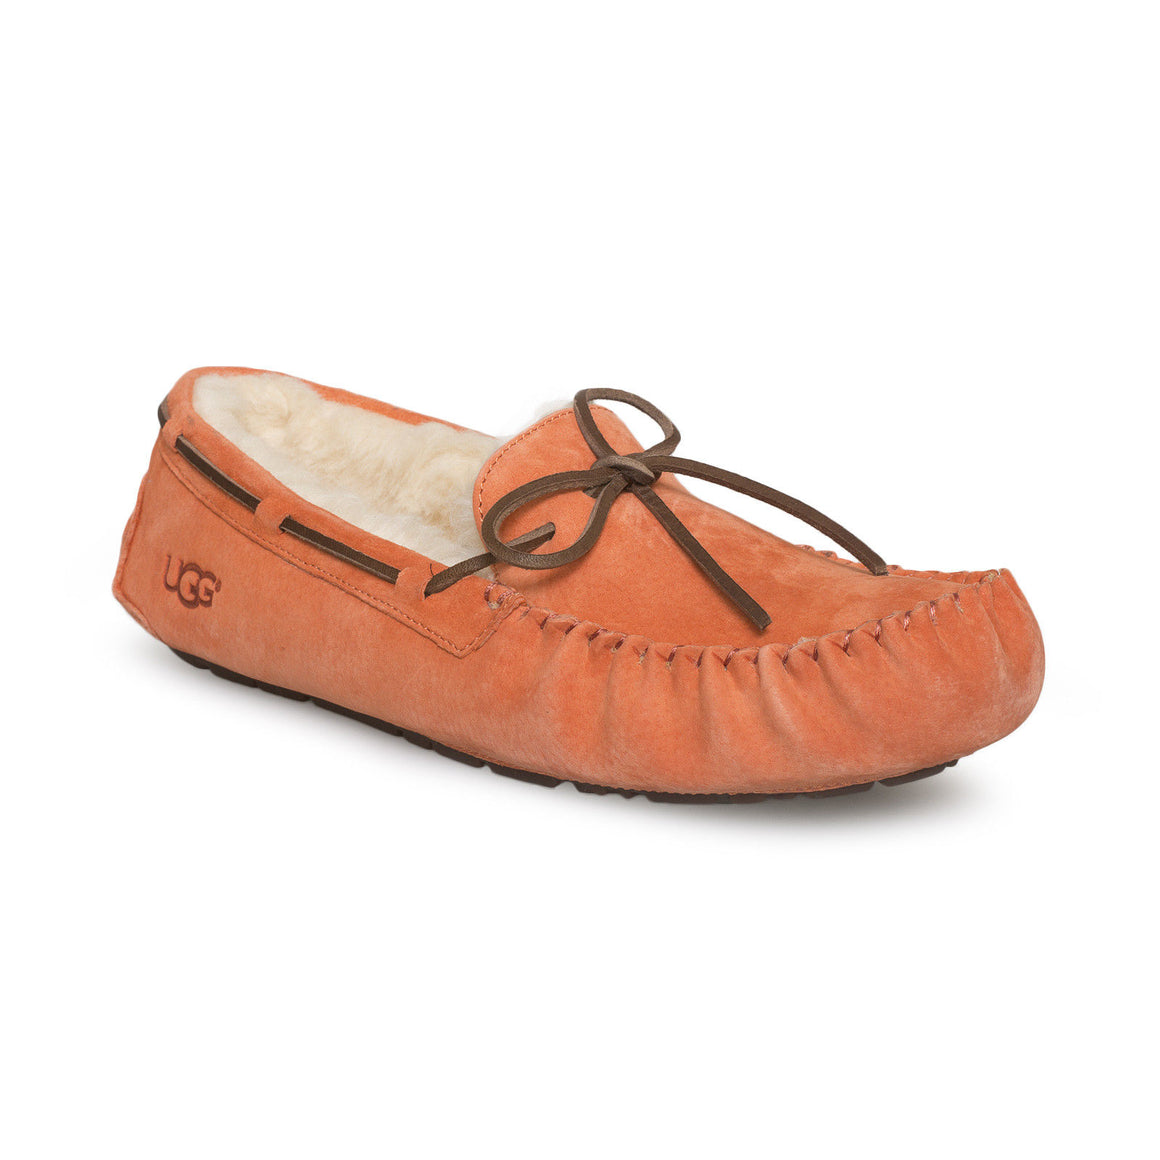 UGG Dakota Fire Opal Slippers